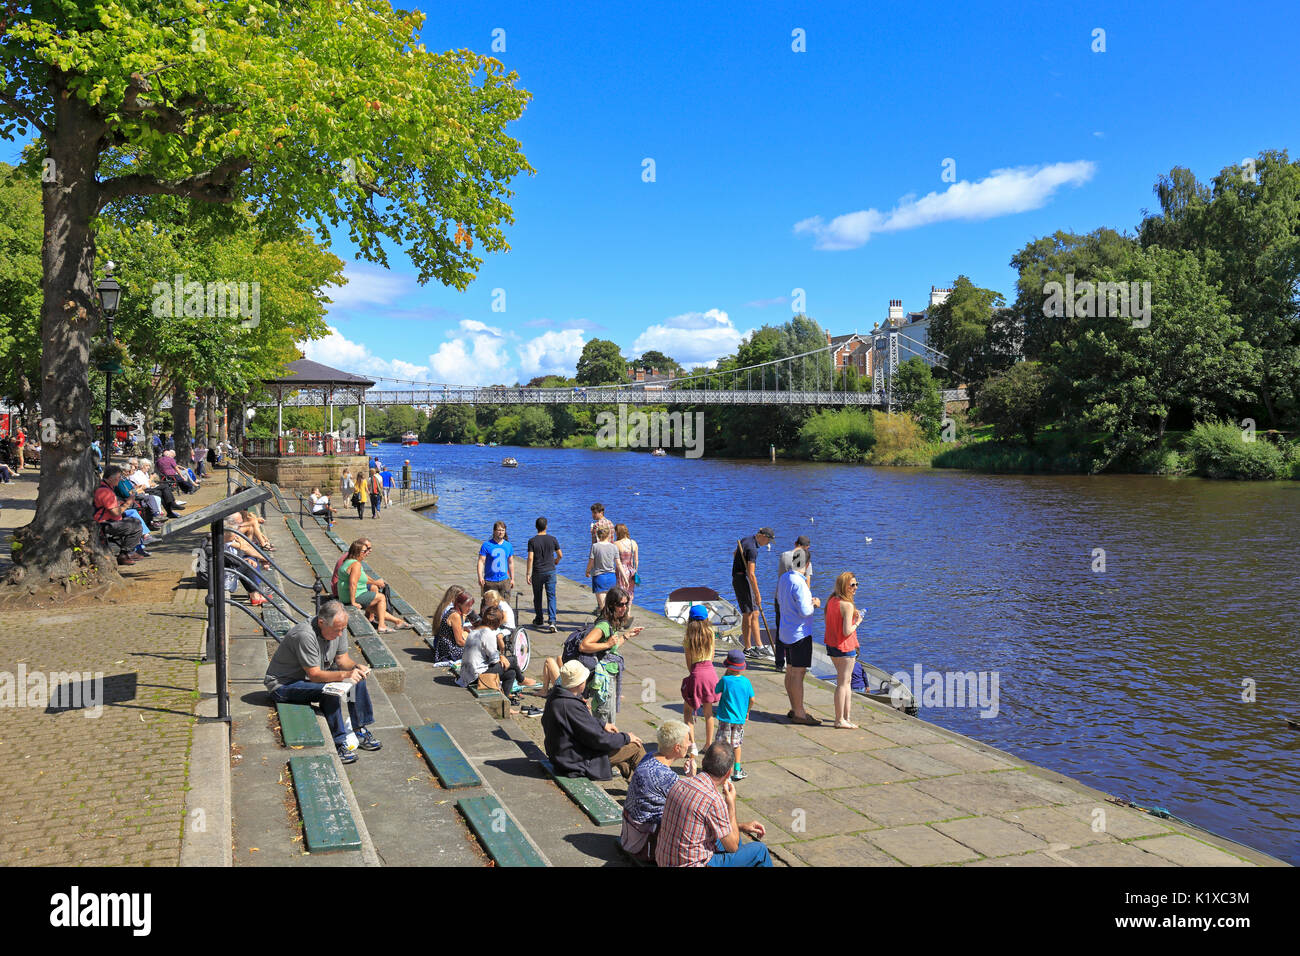 Queen's Park Suspension Bridge over the River Dee, Bandstand and the Groves riverside walk, Chester, Cheshire, England, UK. - Stock Image